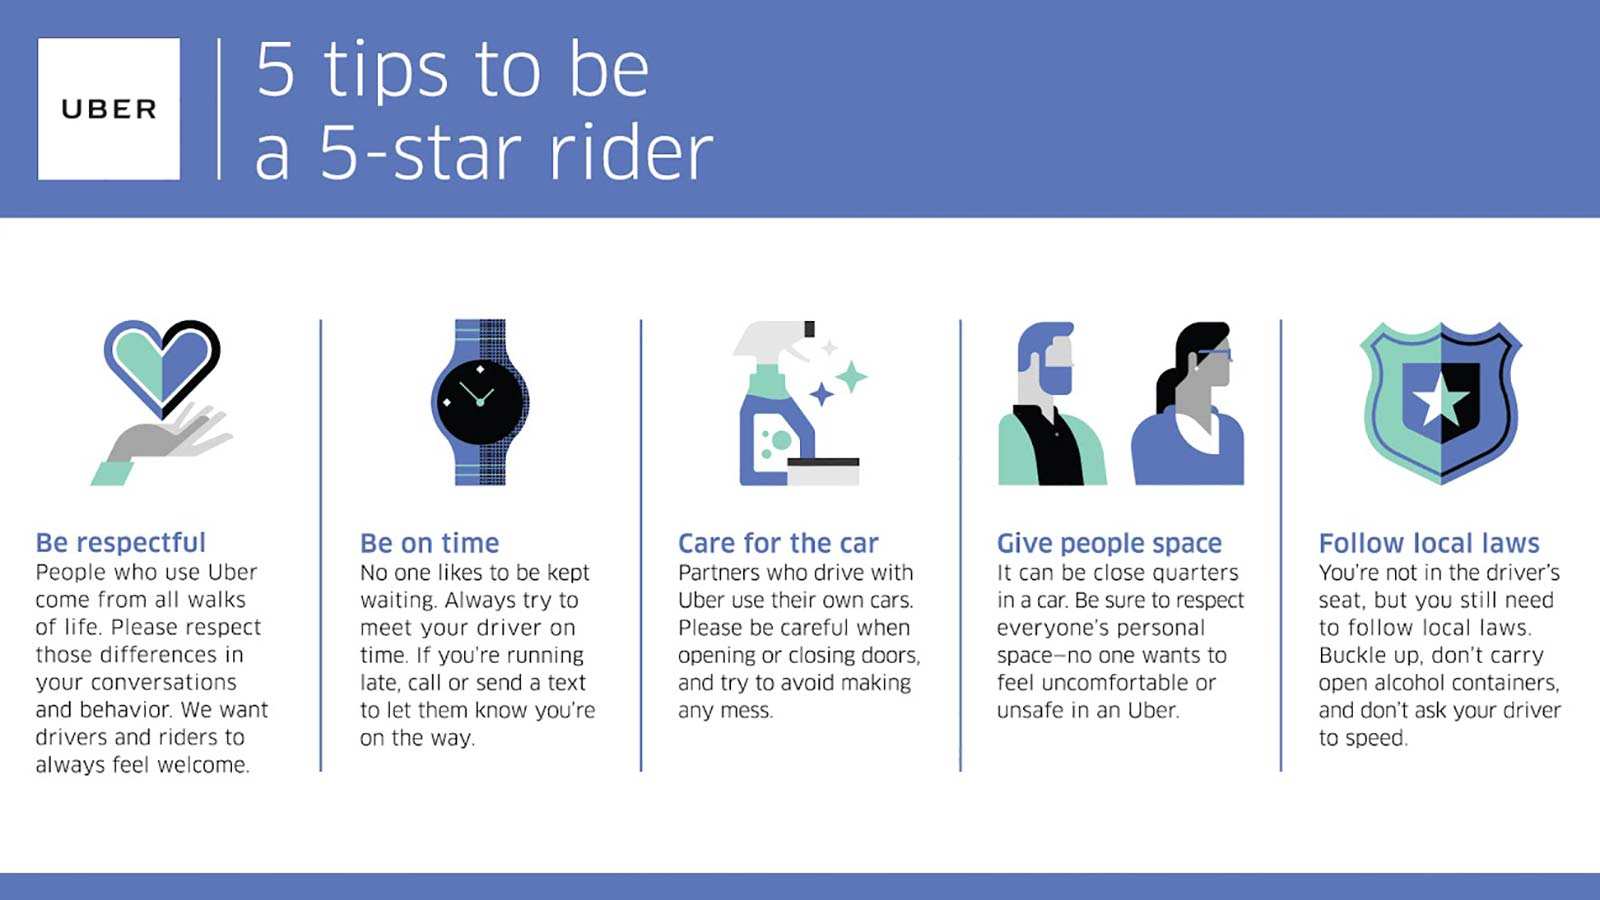 How to Get a Good Uber Rider Rating